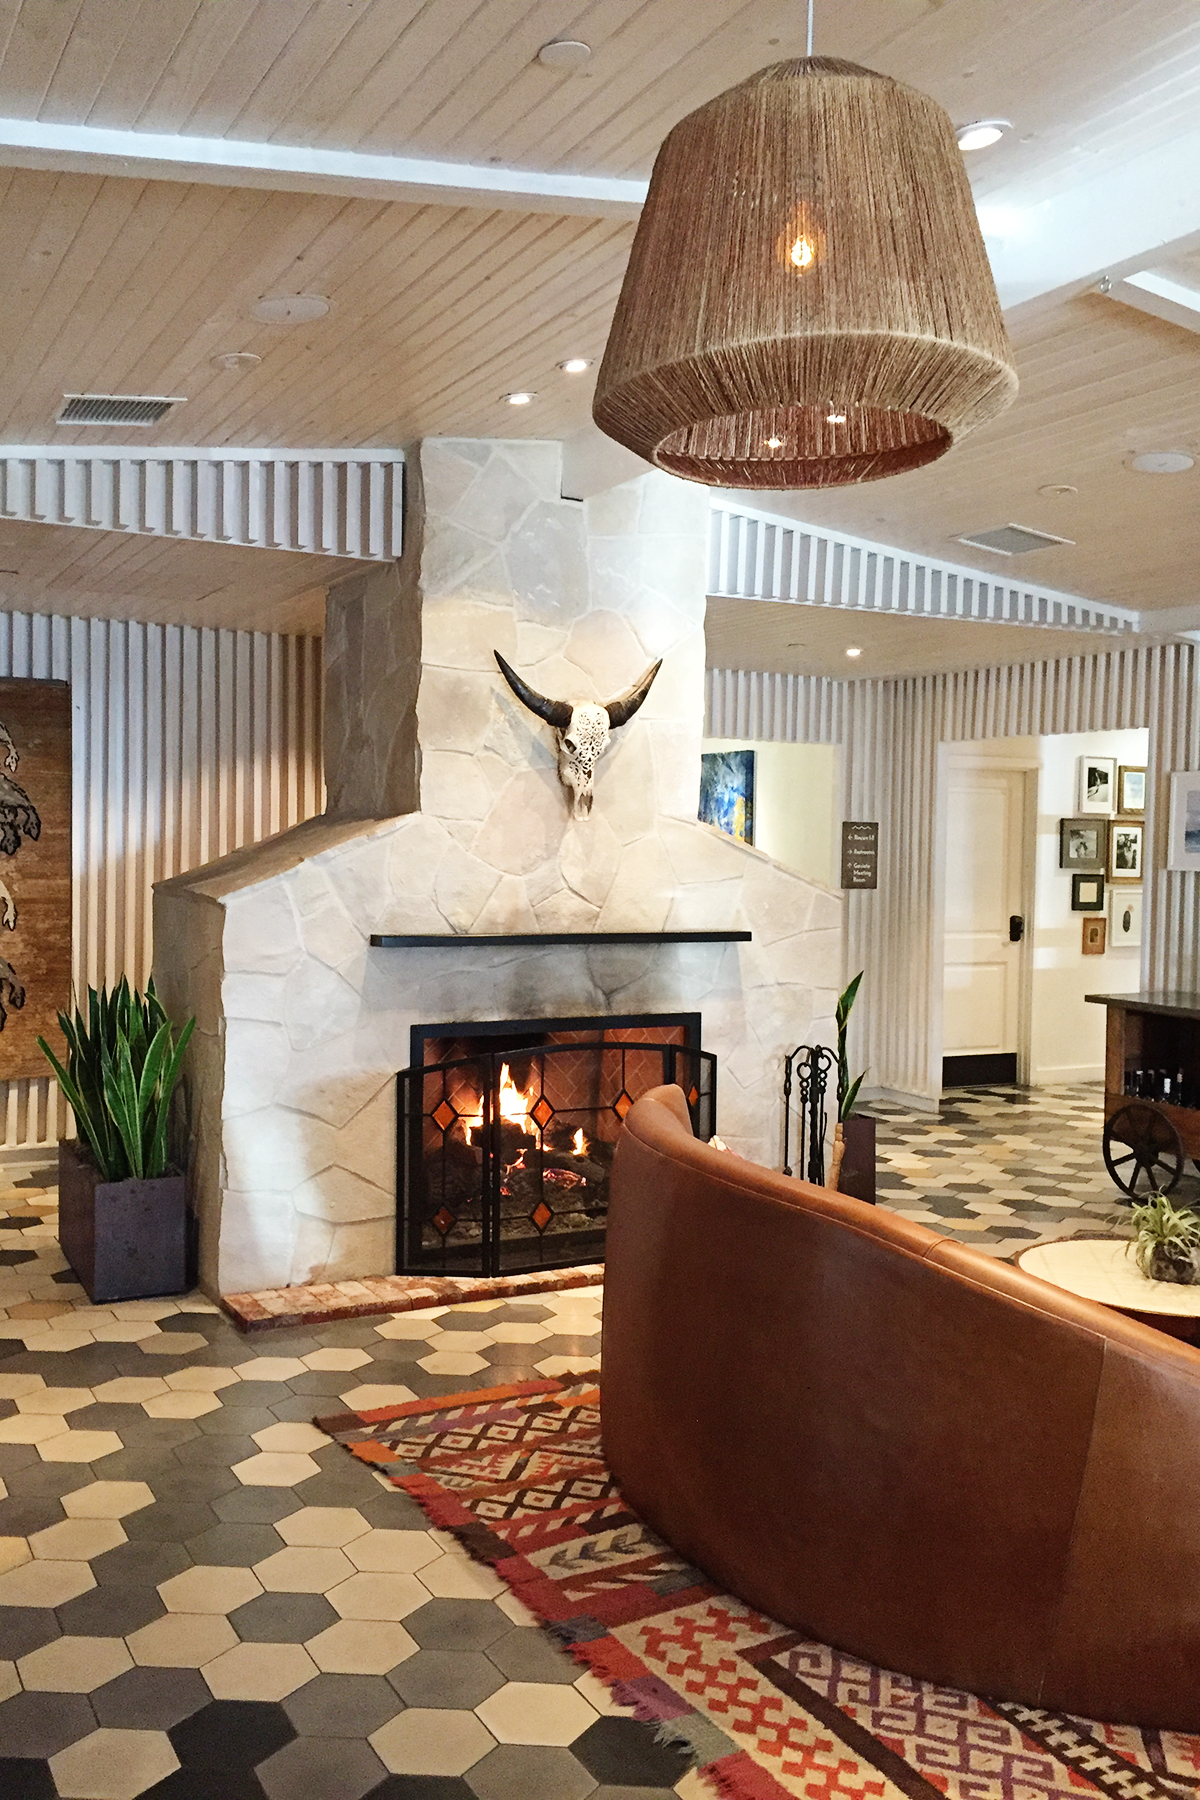 destination design: the goodland kimpton hotel, goleta ca - pink